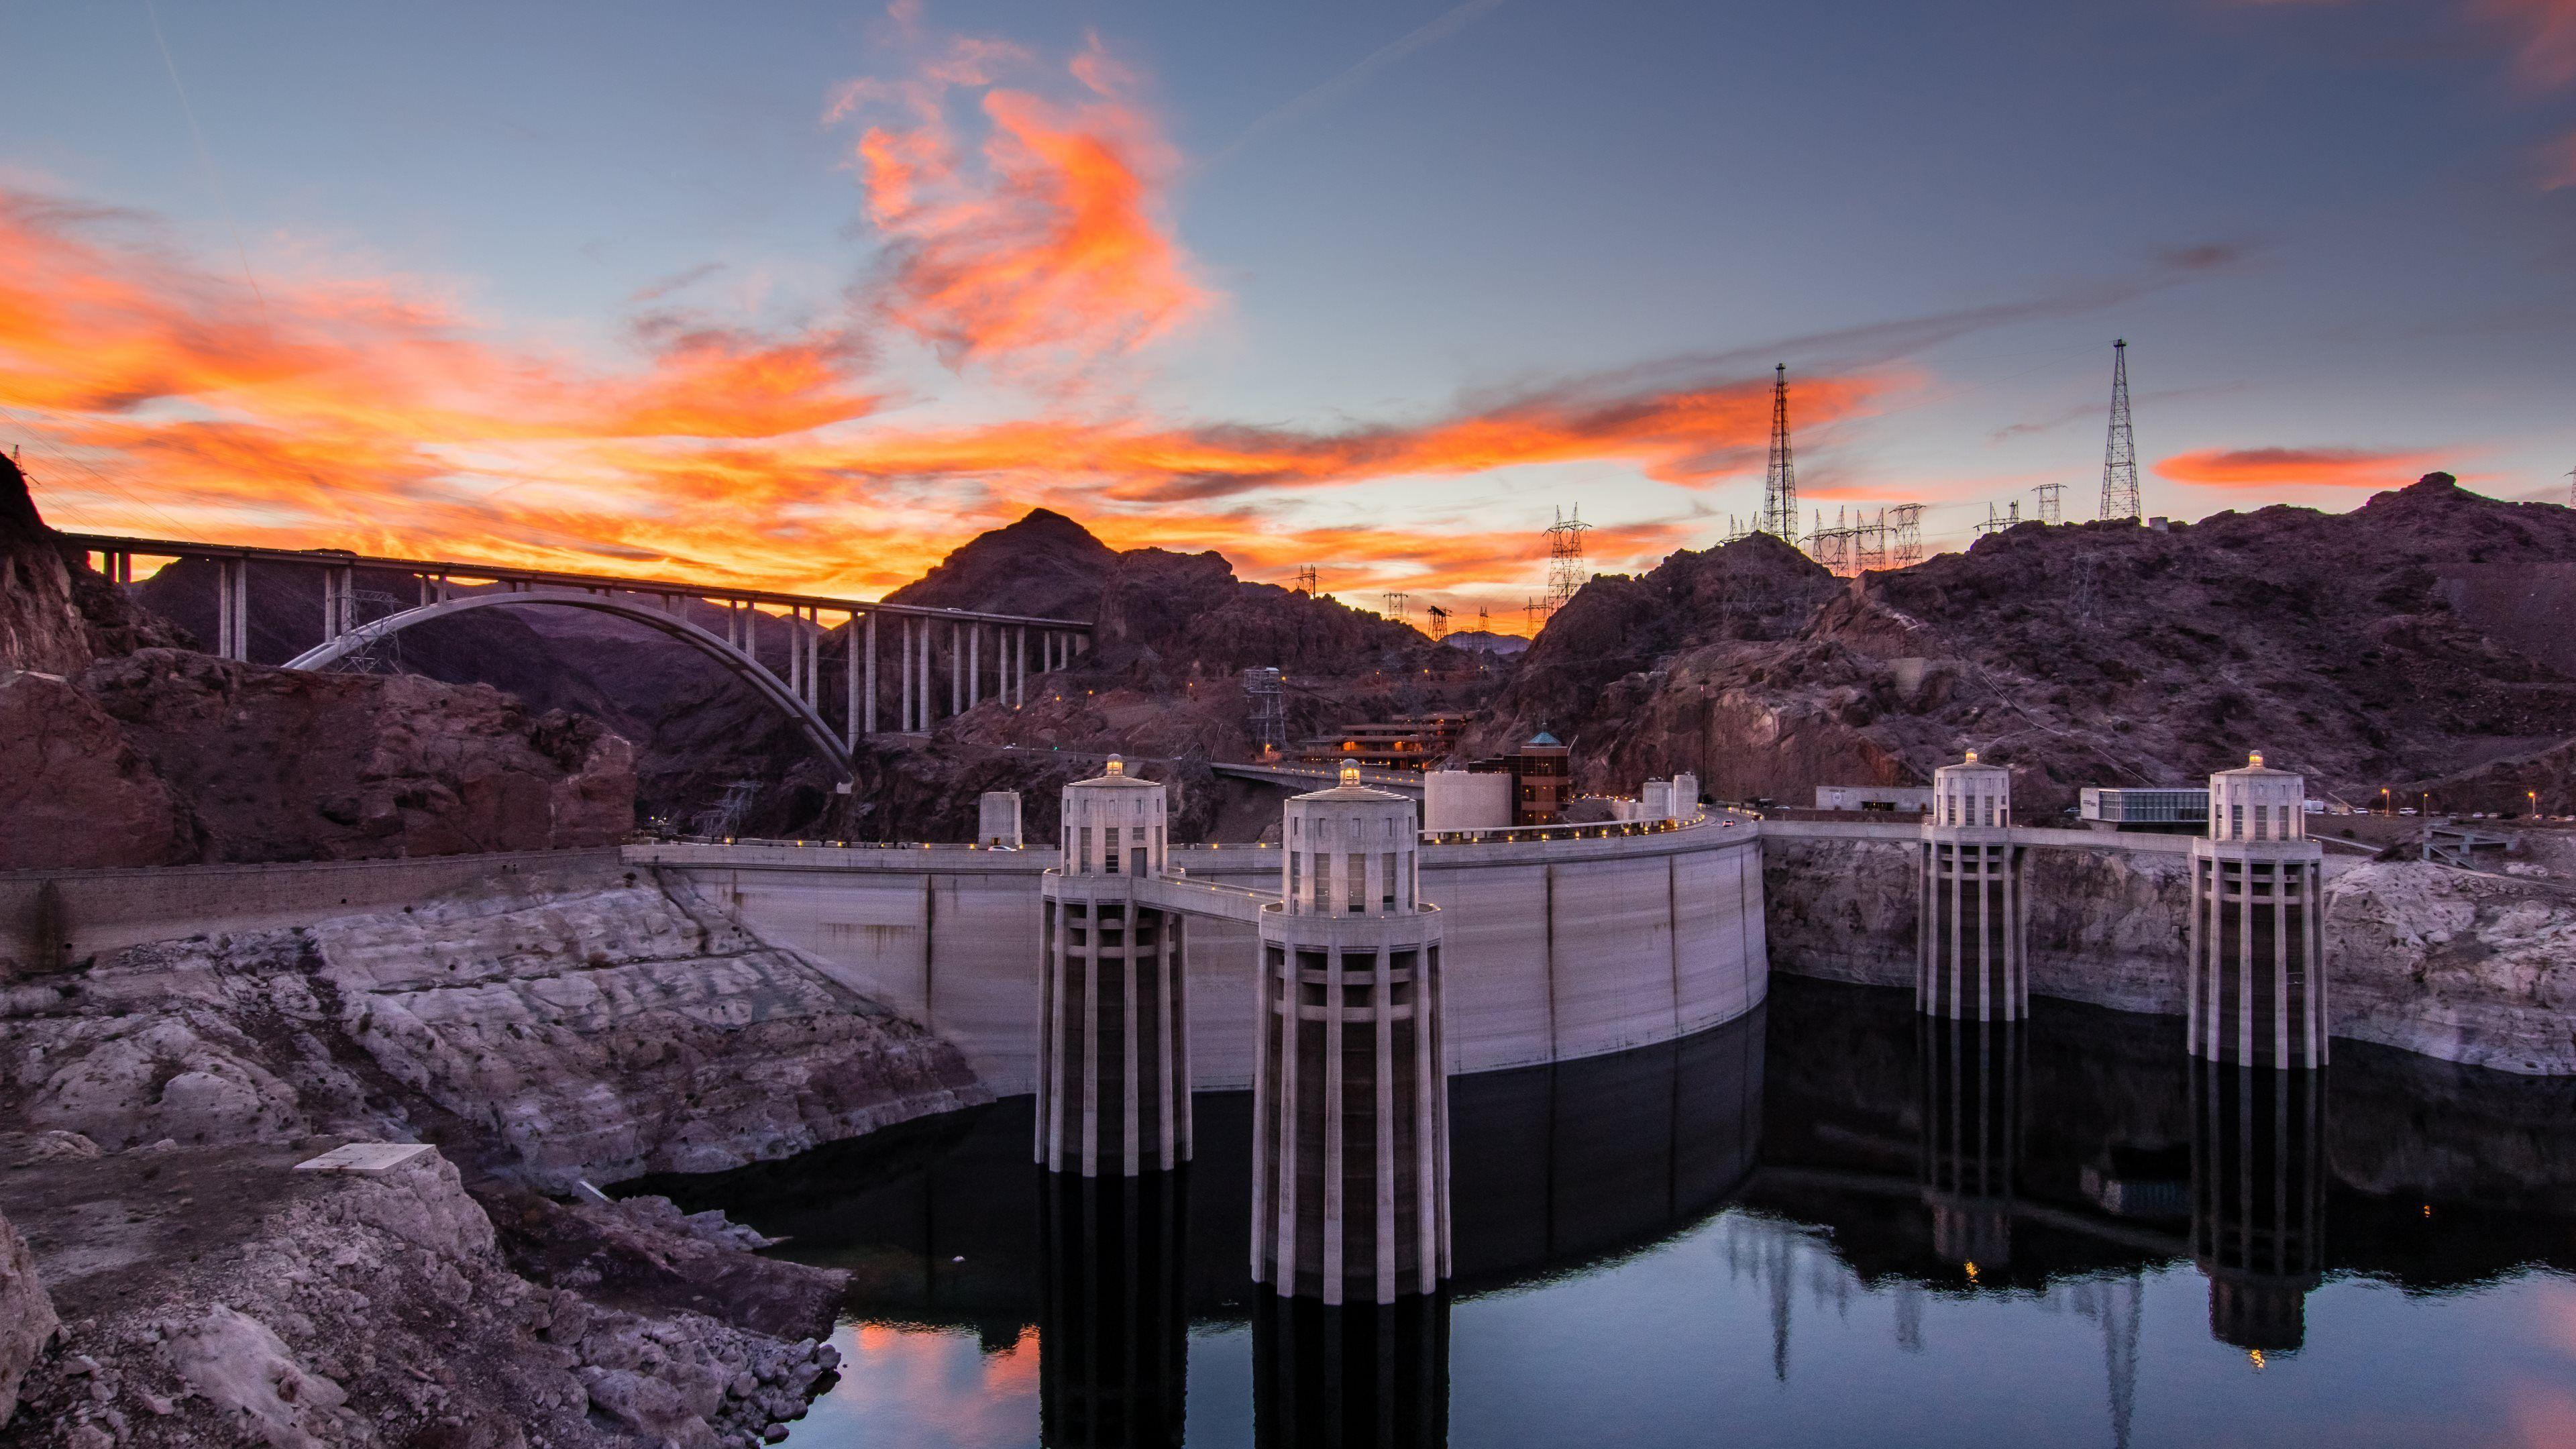 Hoover Dam Wallpaper 13   3840 X 2160 stmednet 3840x2160